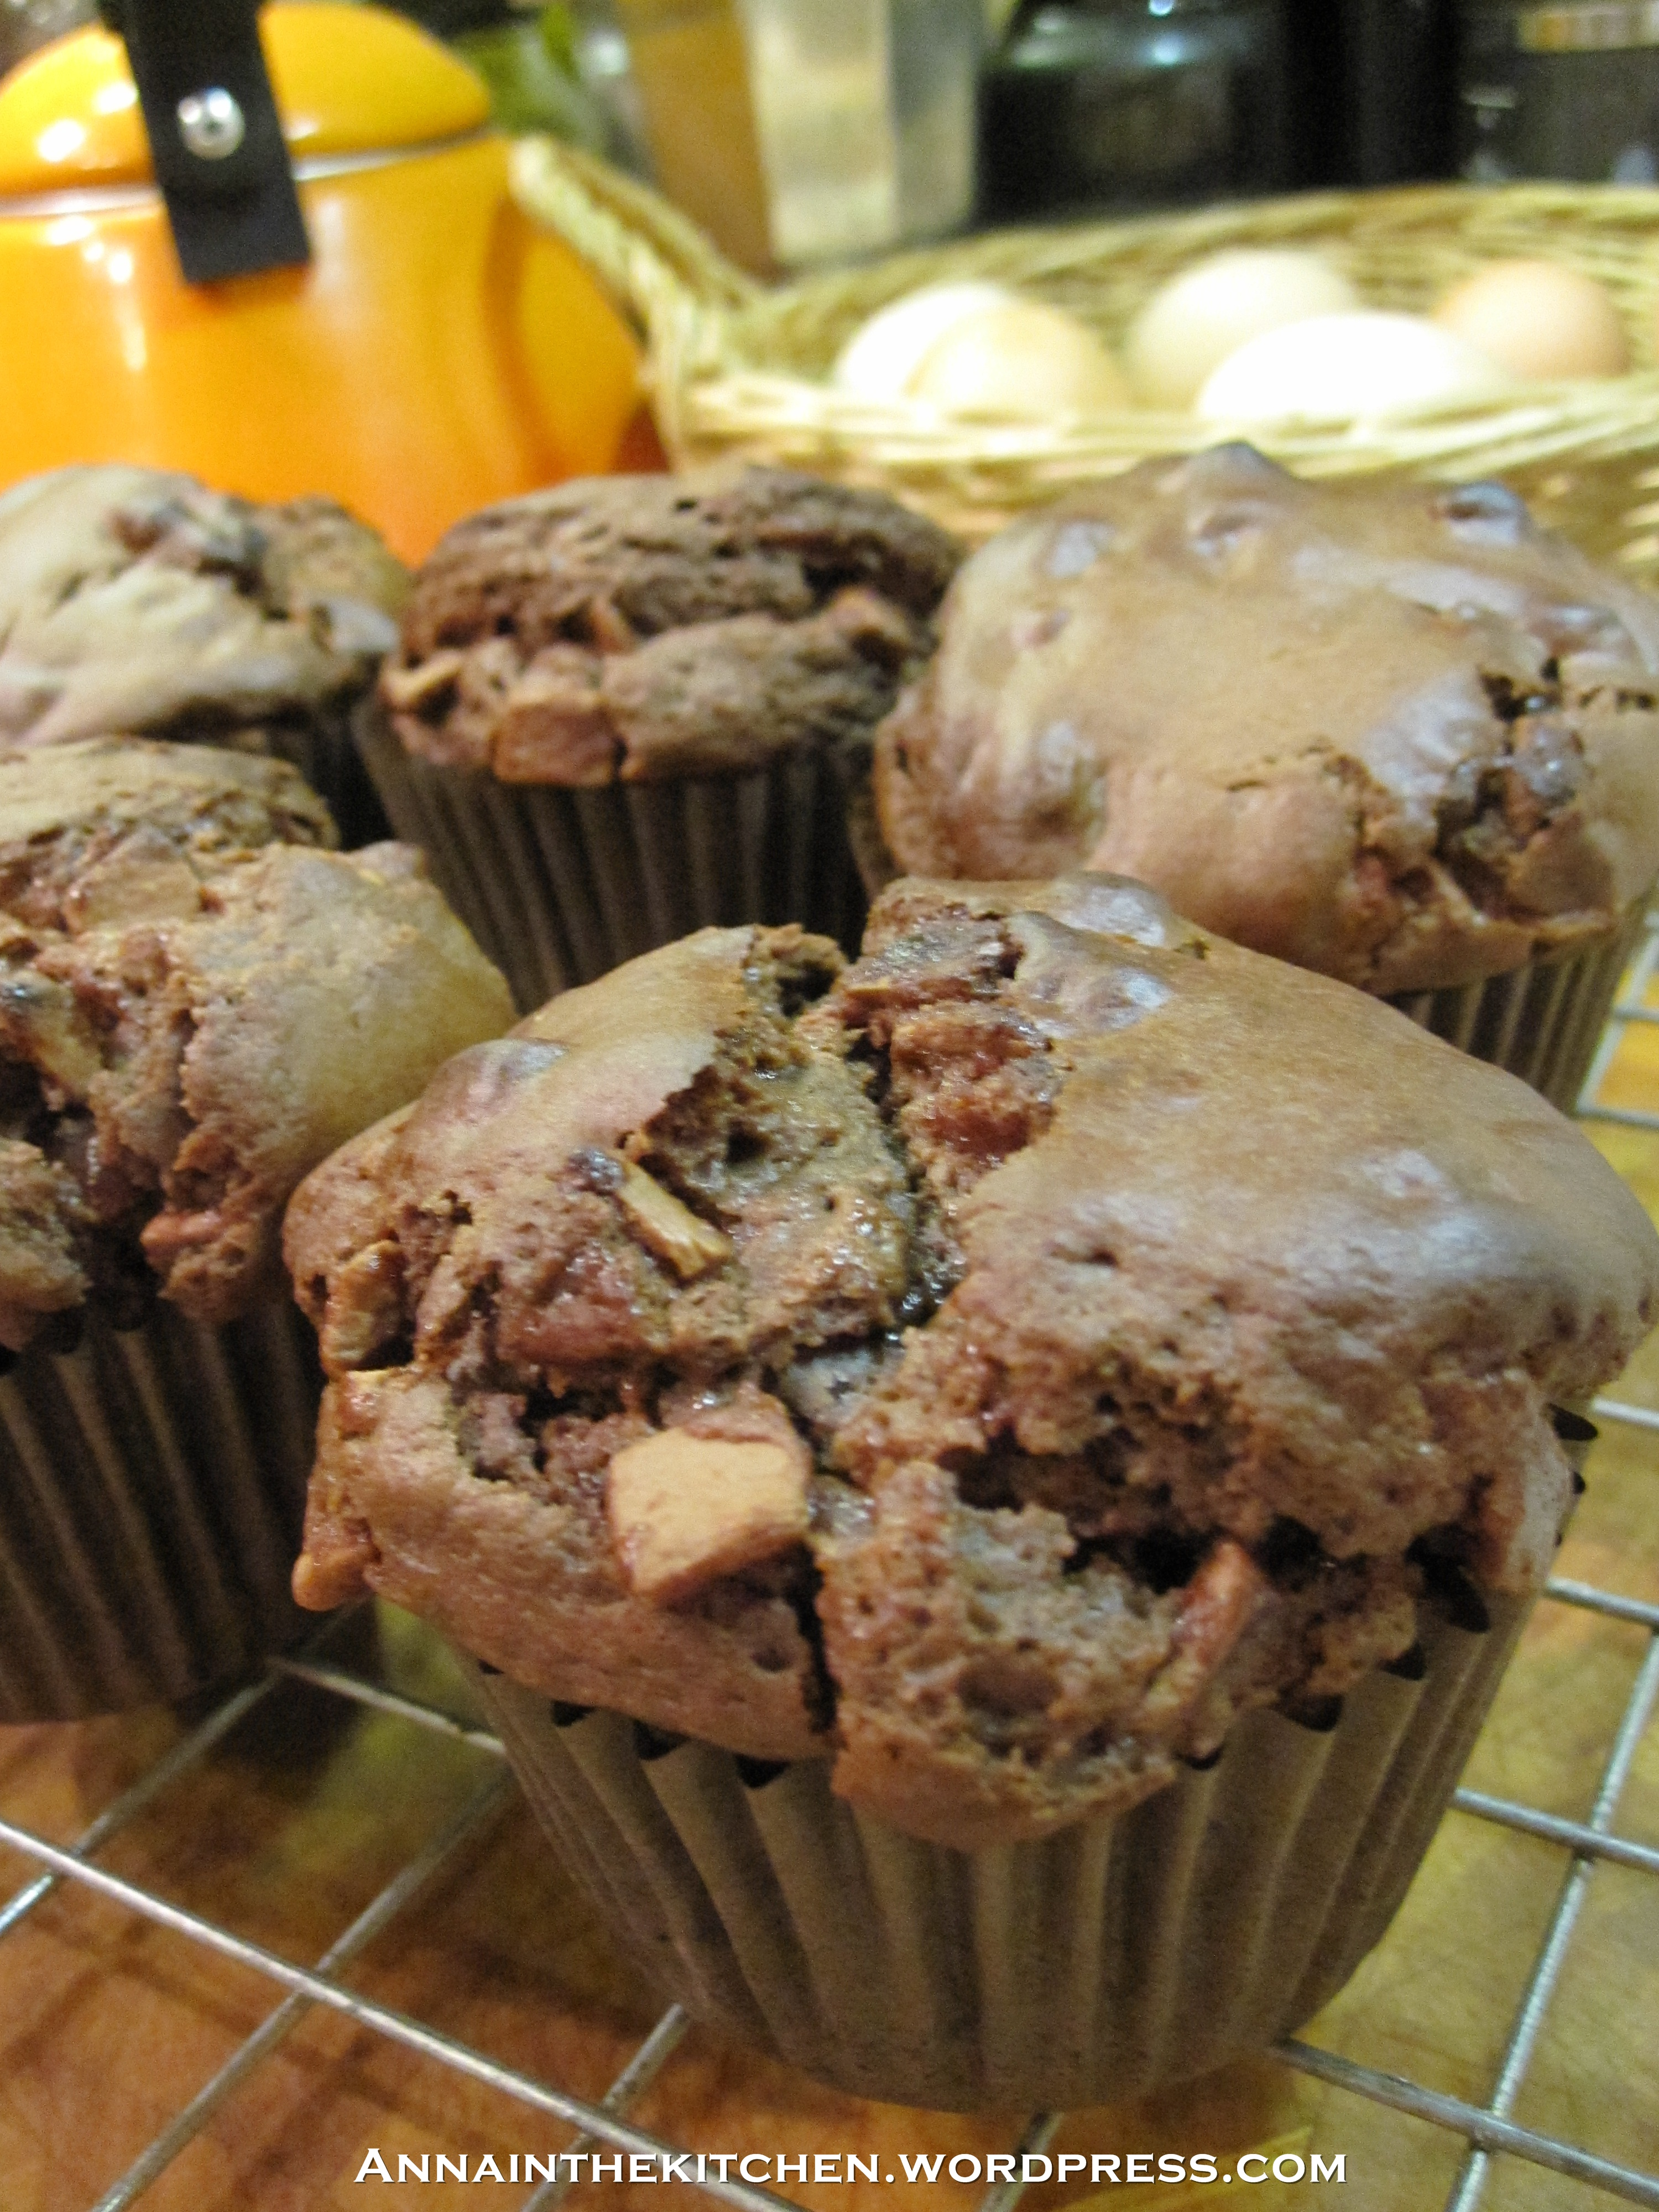 Chocolate Surprise Muffins